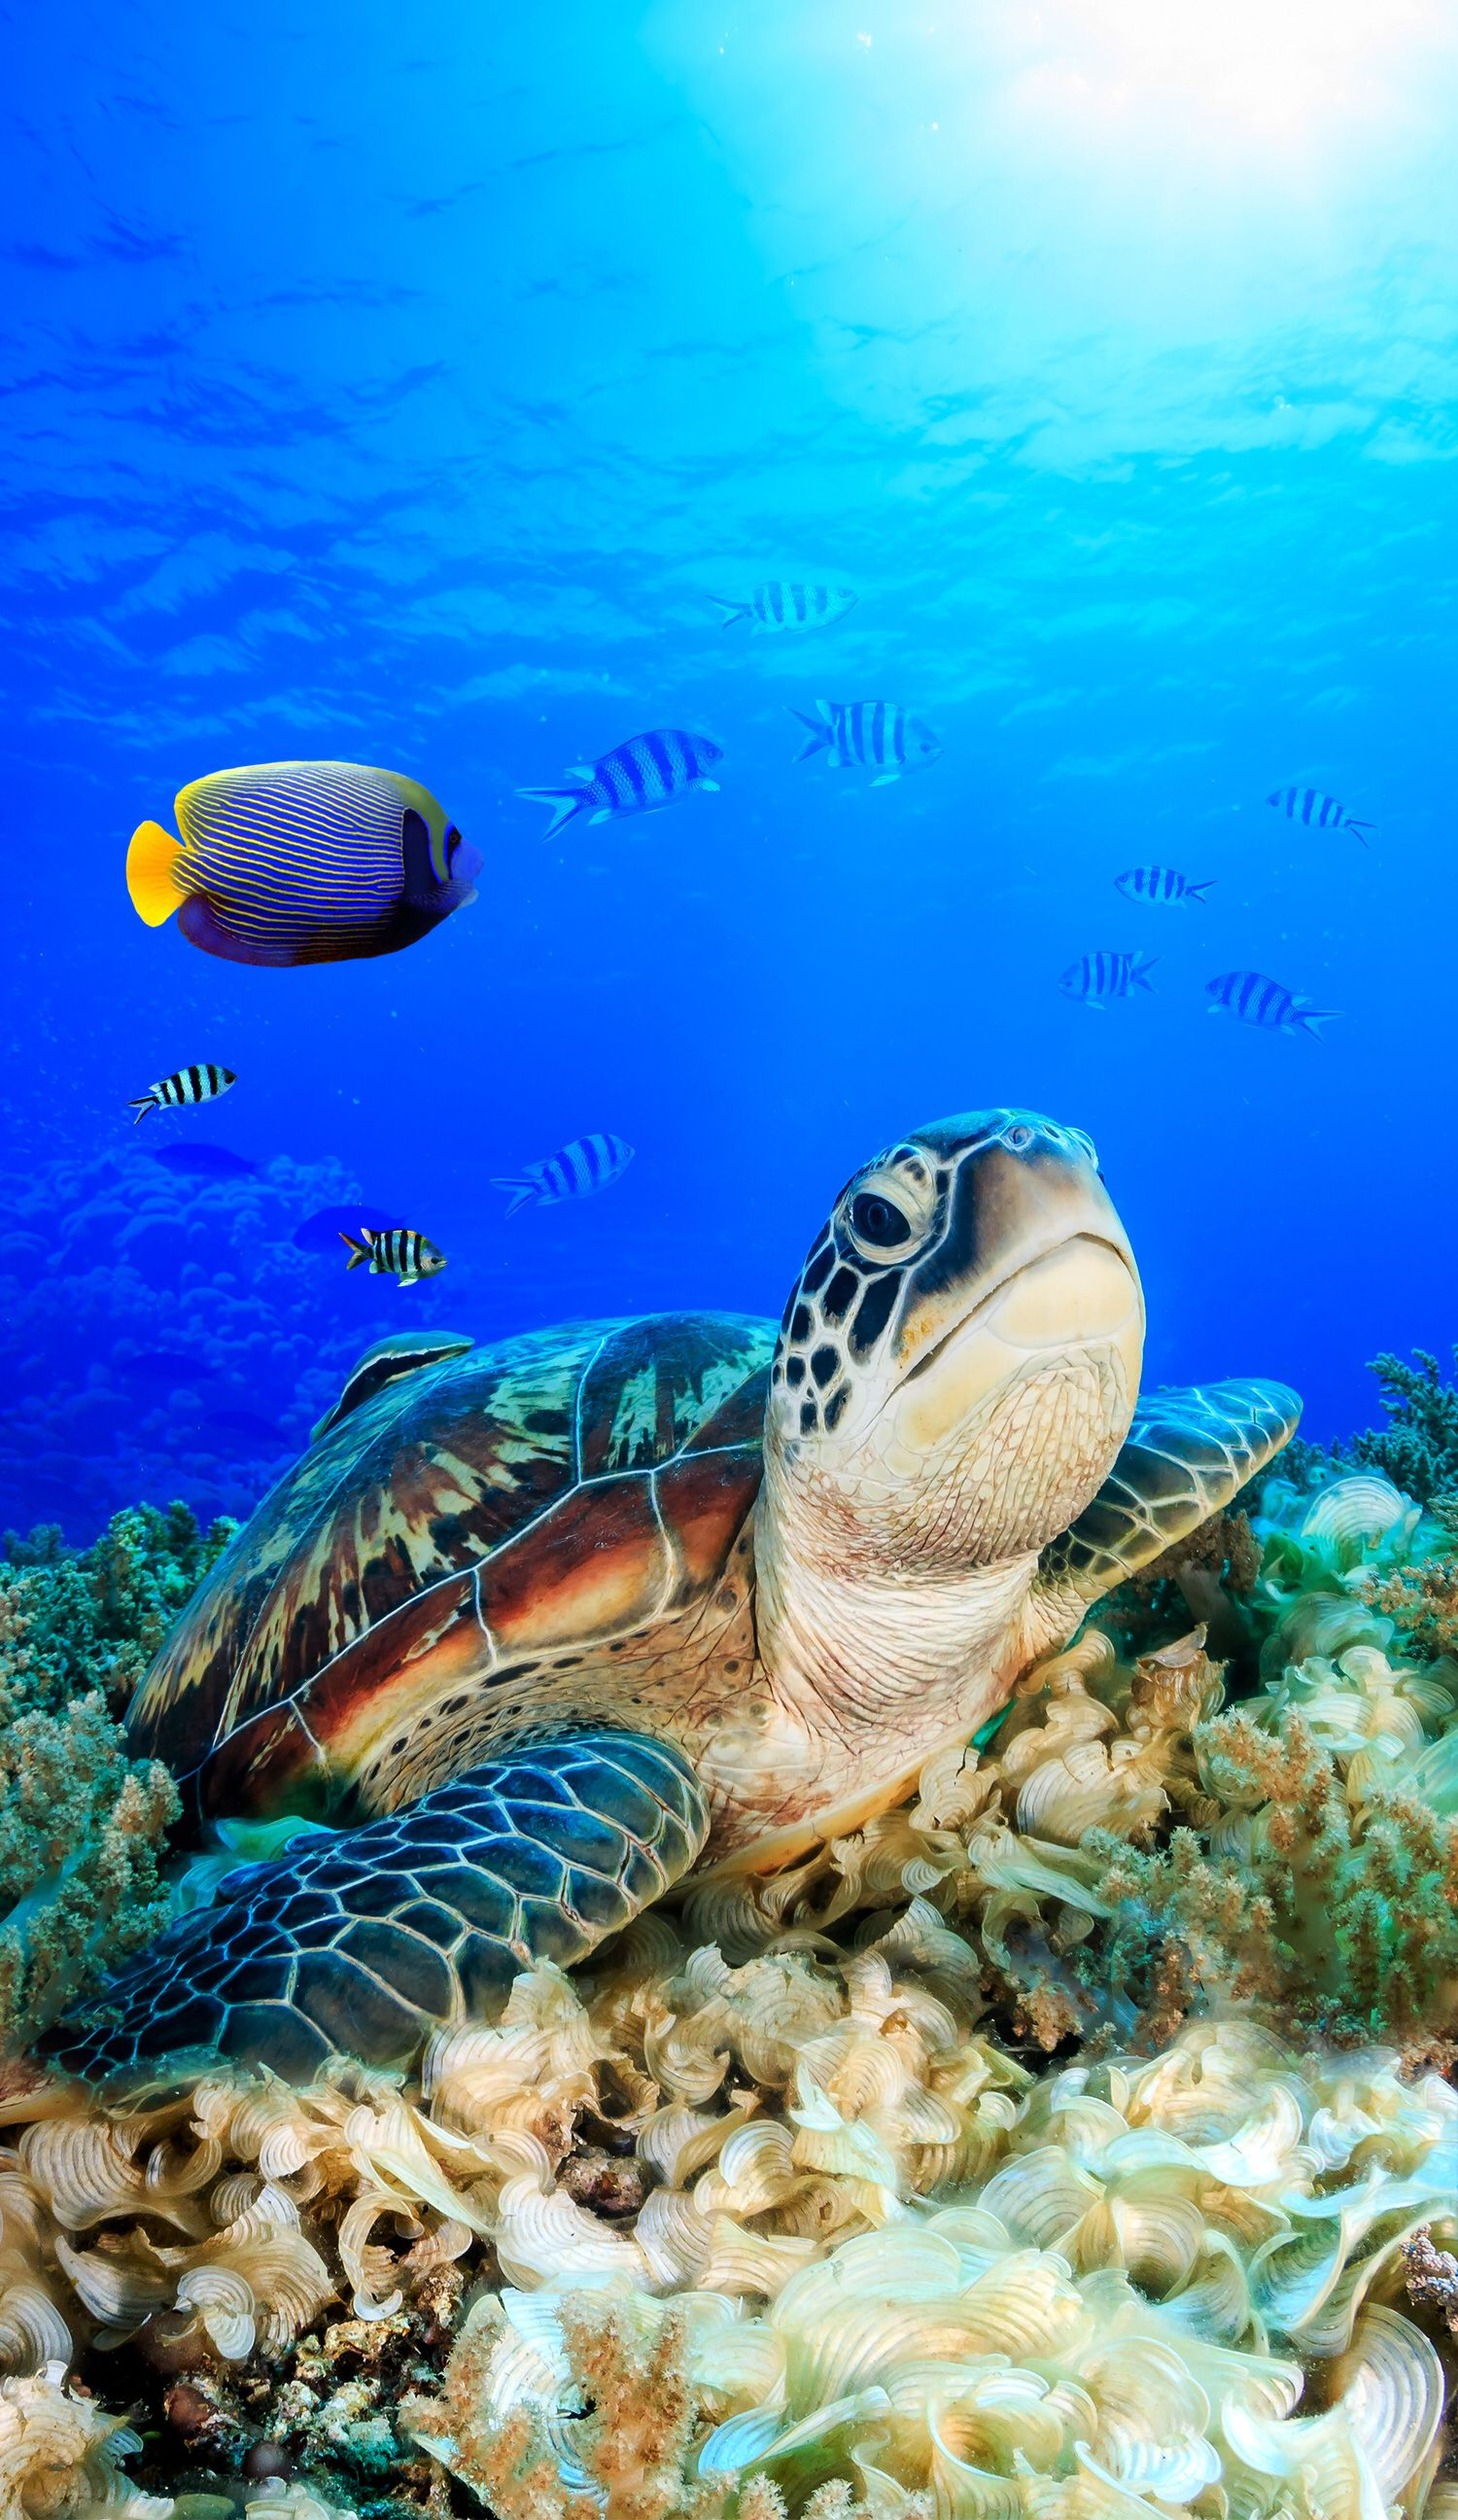 Pin by Lollikins on Summer Wallpaper Baby sea turtles